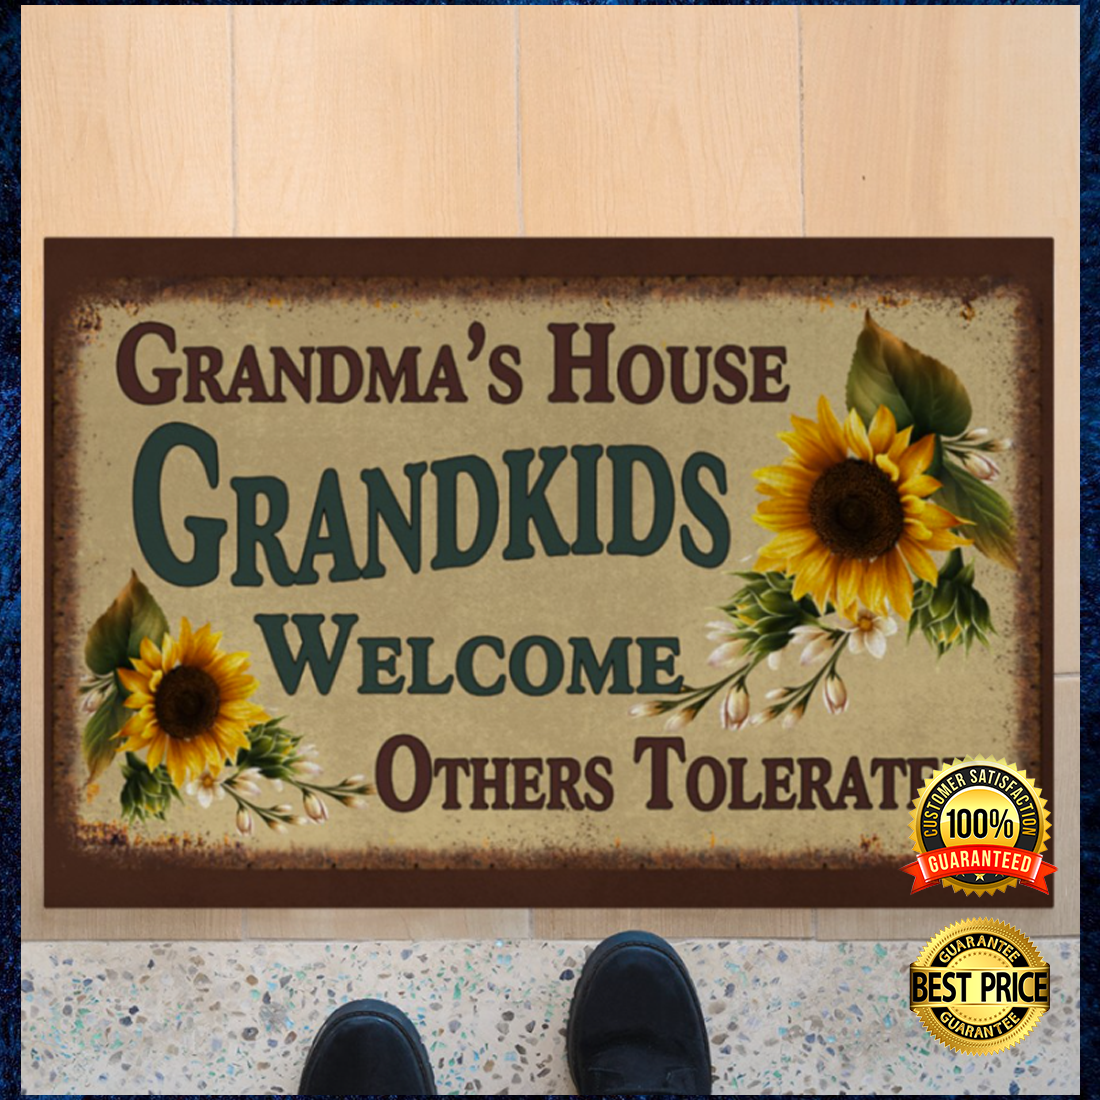 Grandma's house grandkids welcome others tolerated doormat 4